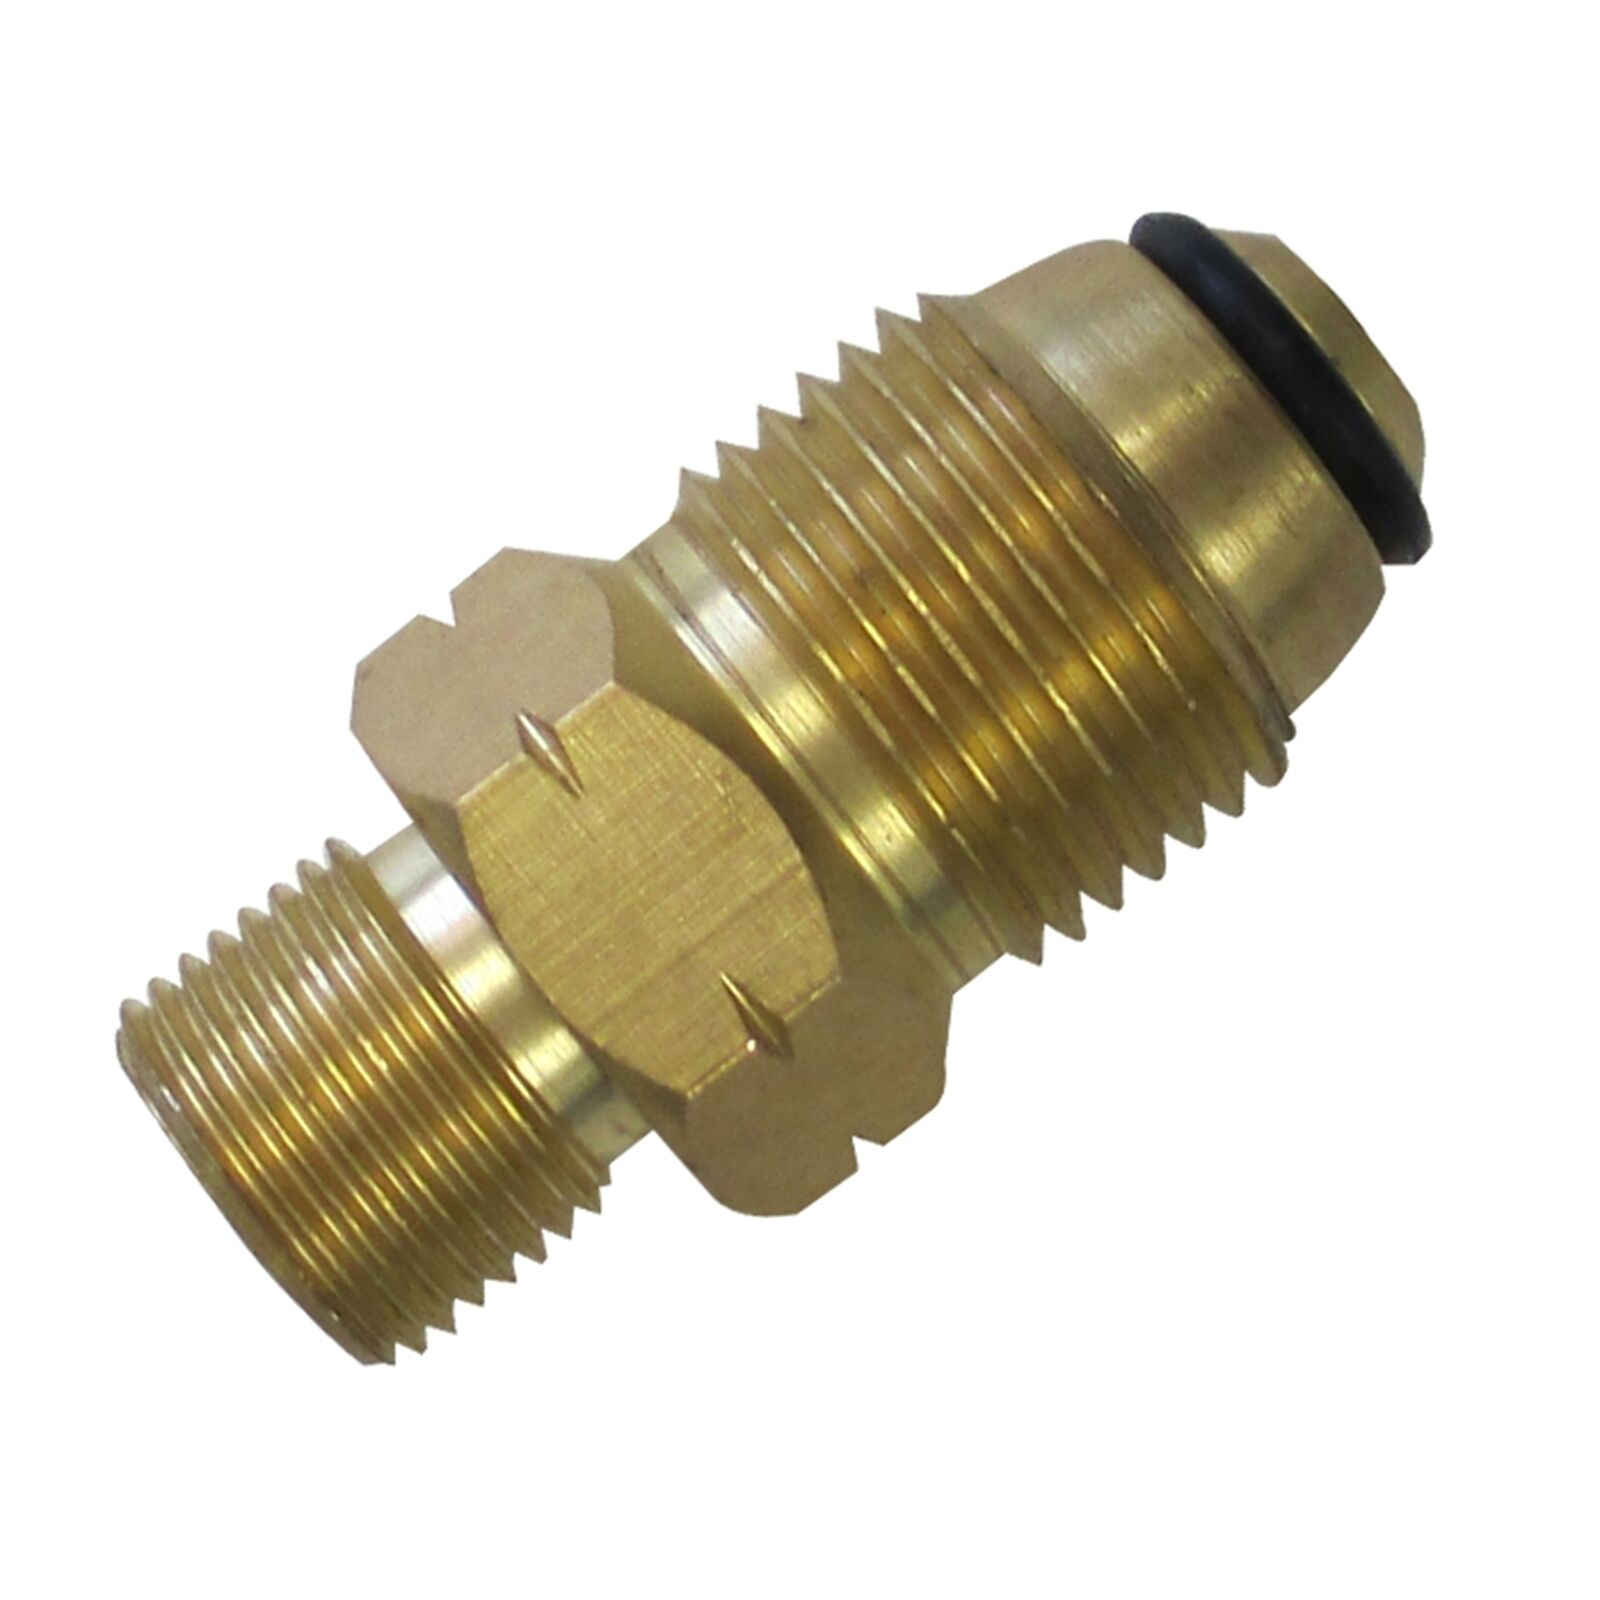 2x Gasmate BRASS STRAIGHT GAS ADAPTOR  Congreens POL To 3 8 Inch BSP-LHAust Brand  official quality